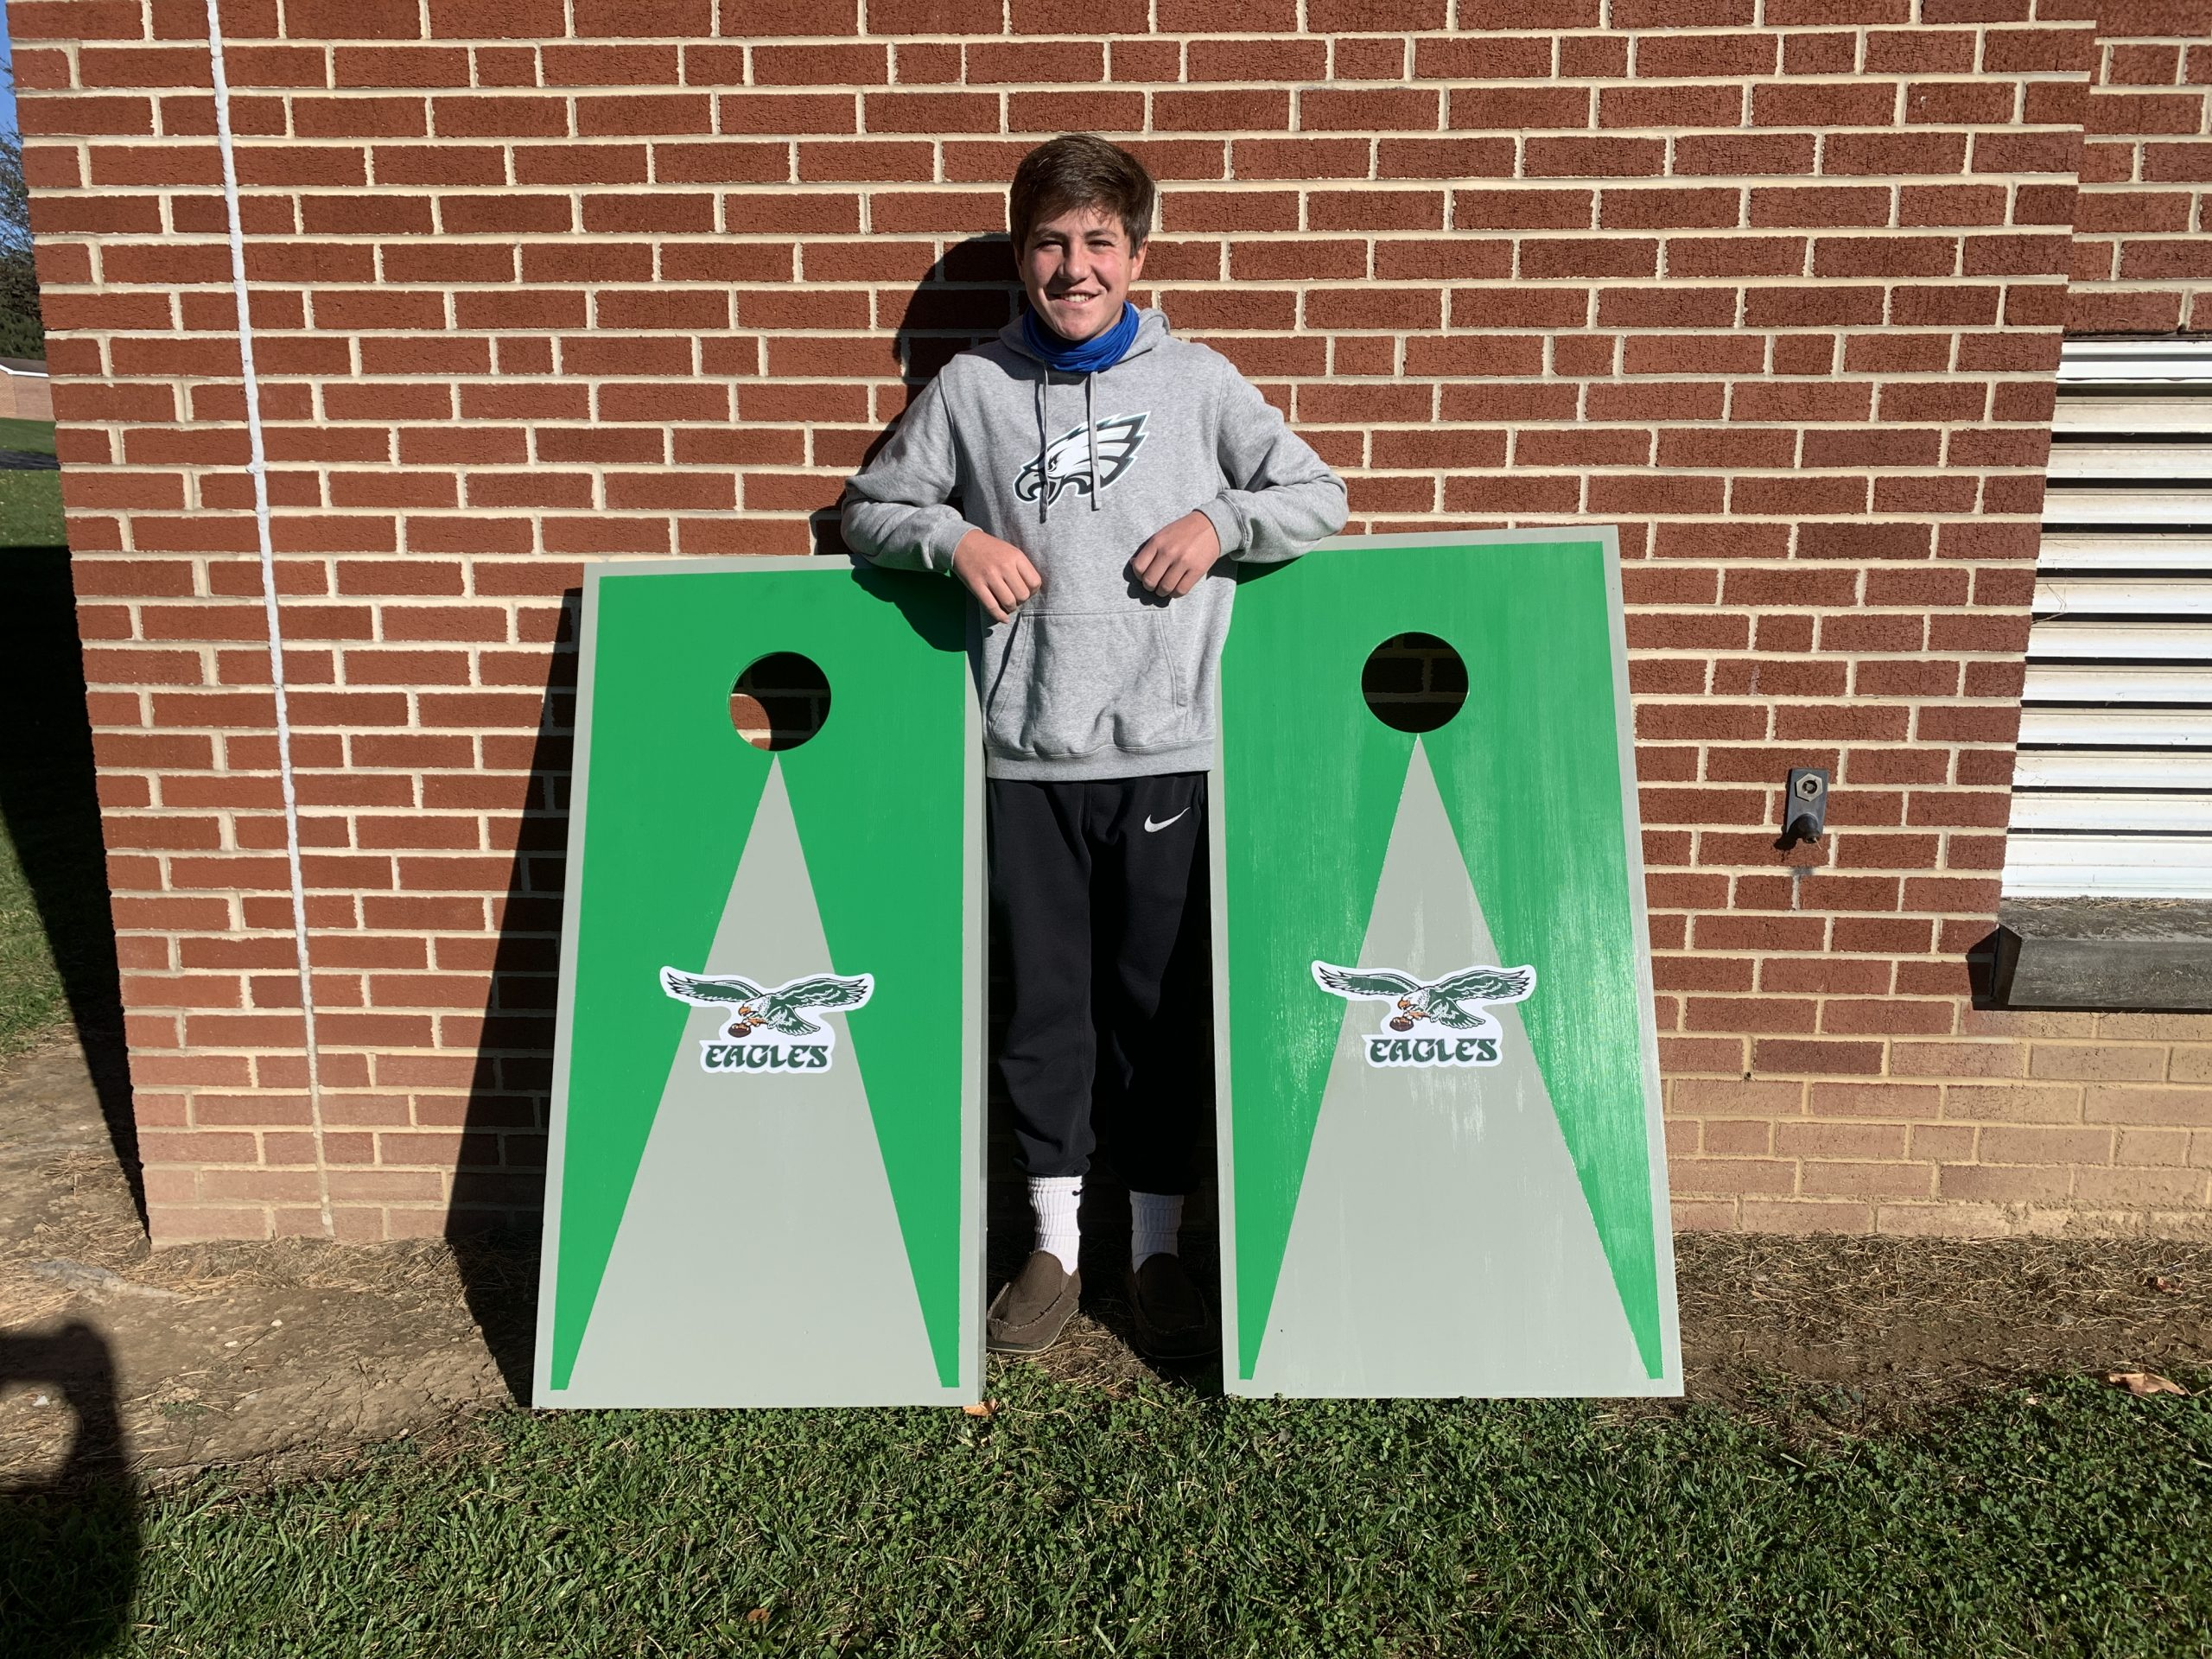 Joey Hoover's Cornhole Boards he built in Mr. Aument's Advanced Materials class